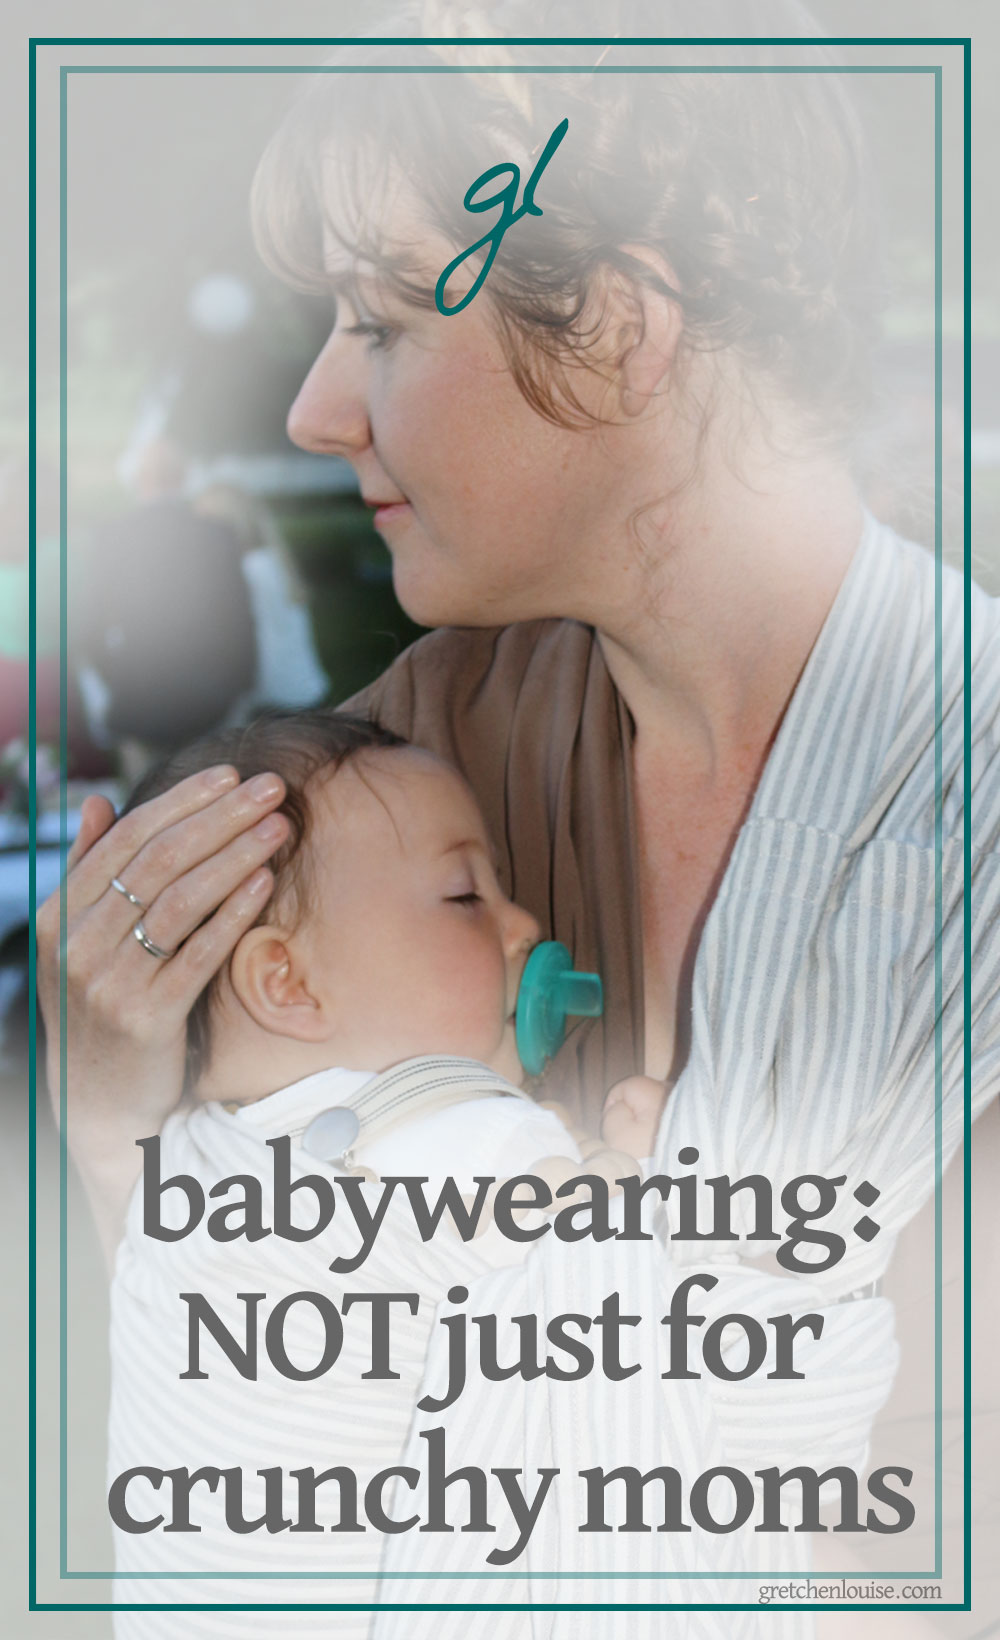 I thought babywearing was just for all-natural moms who practiced attachment parenting. I couldn't have been more wrong. I learned that babywearing transcends cultures and parenting styles. Babywearing is for every mom and dad (aunts and uncles, grandparents and babysitters, too!); it adapts to every family's needs. via @GretLouise